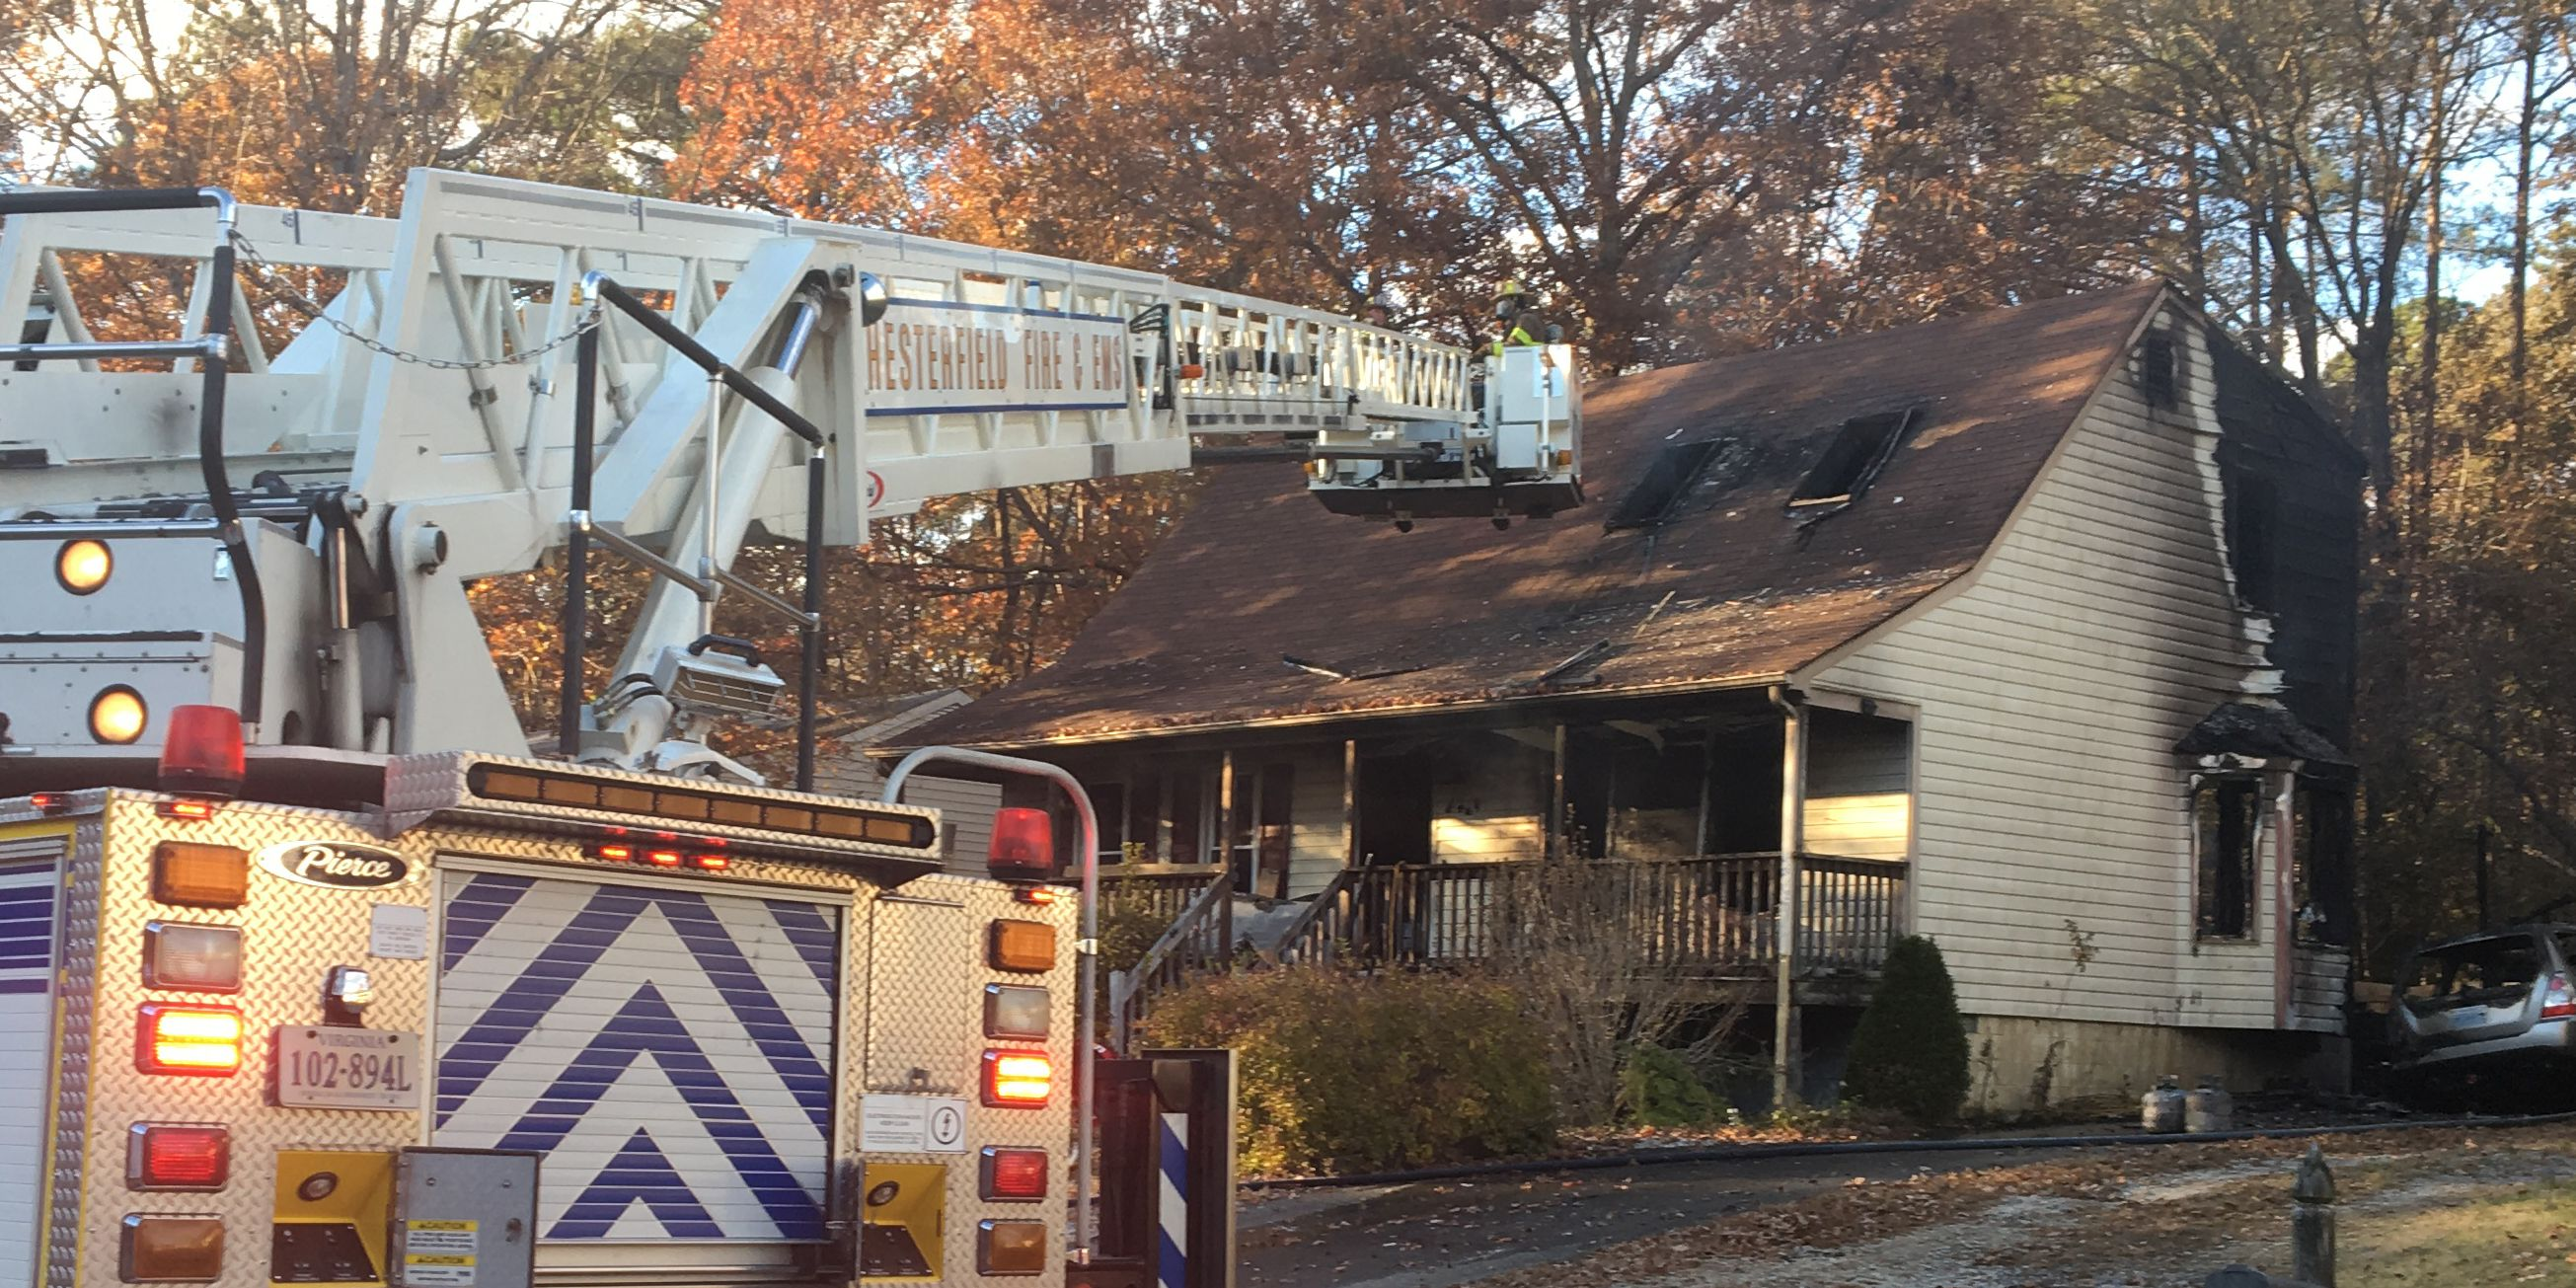 Heating lamp on back deck sparks Chesterfield fire that killed dog